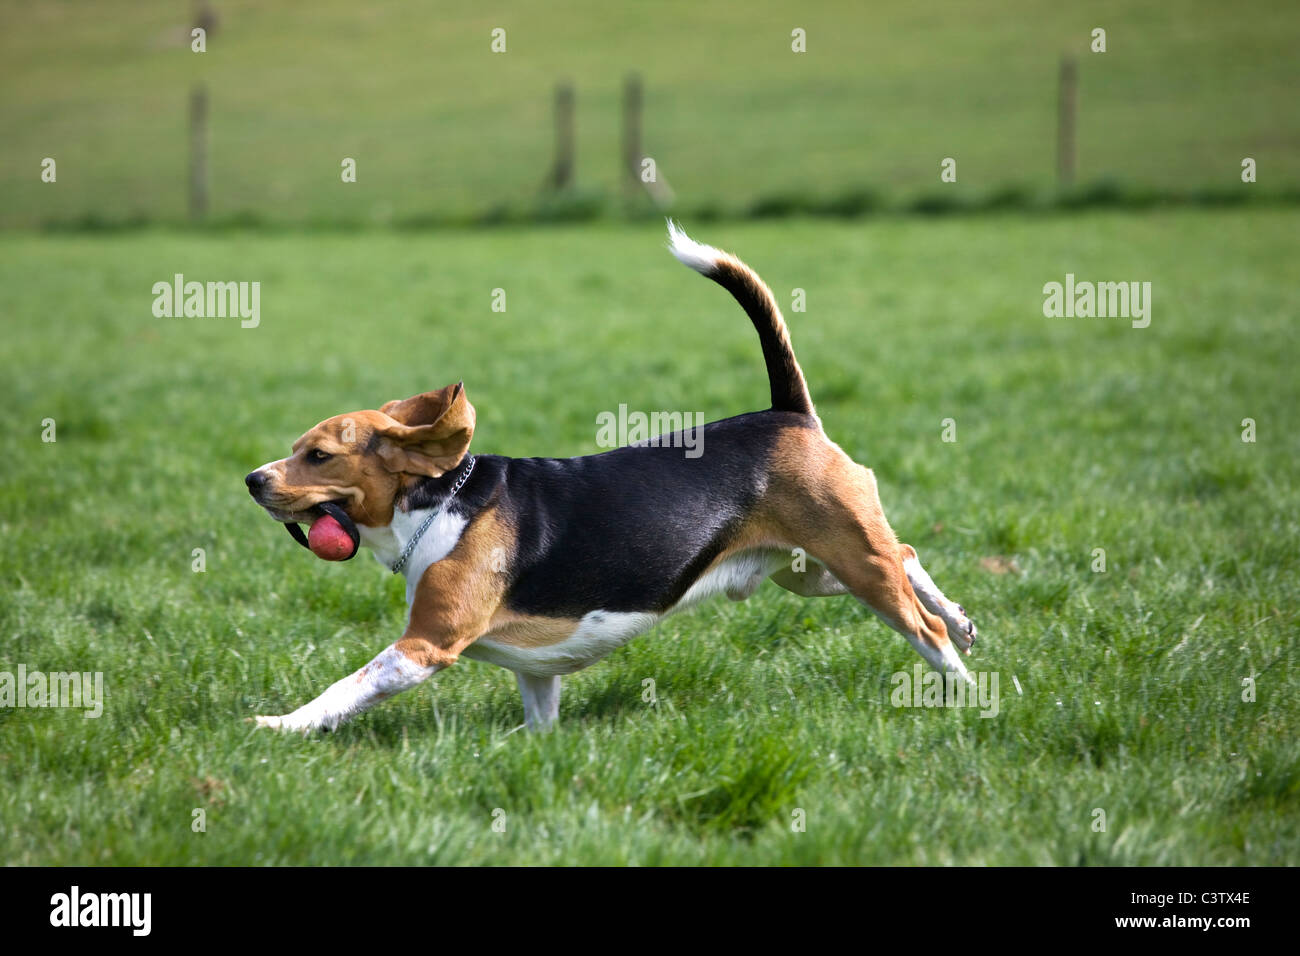 Beagle (Canis lupus familiaris) running with ball in mouth - Stock Image